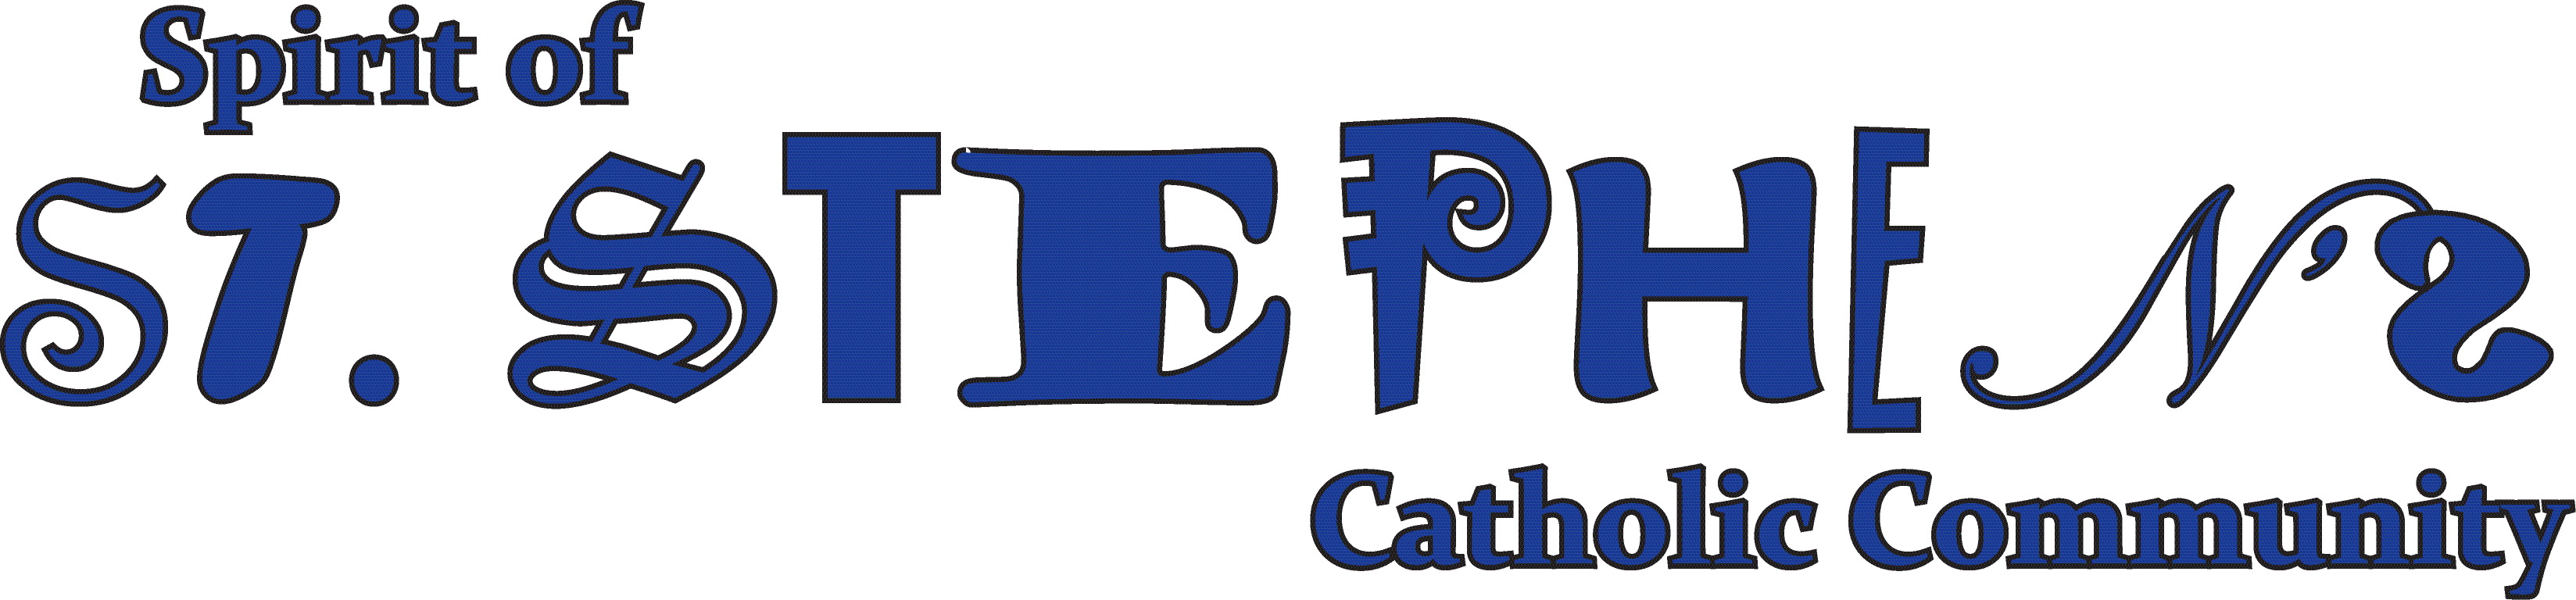 St Stephens logo blue black on white